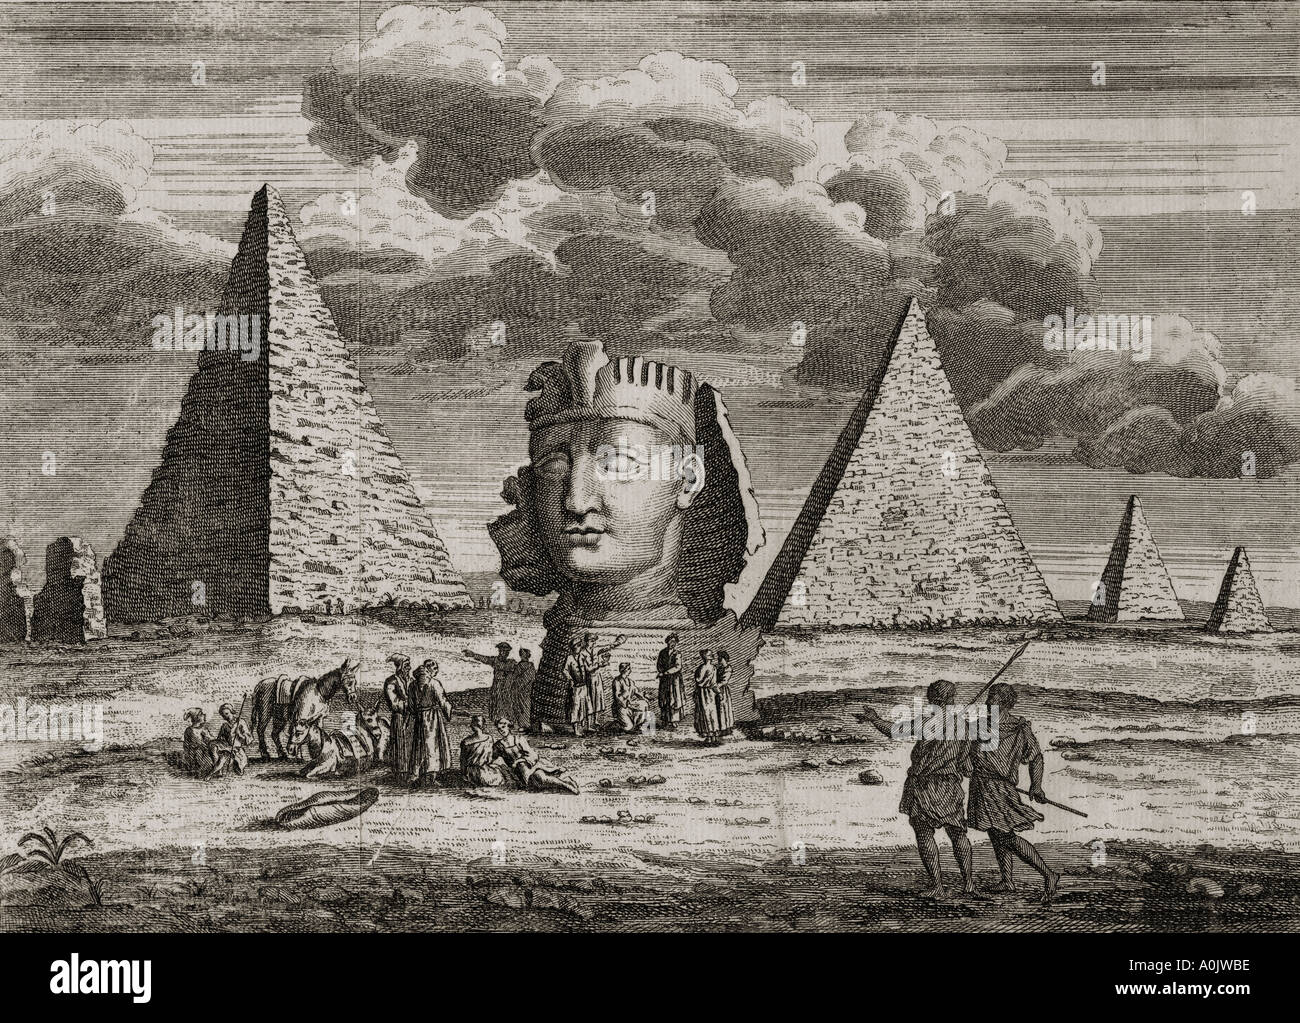 Giza, Egypt.  Pyramids and Sphinx as imagined by an 18th century artist.  From an 18th century print. - Stock Image